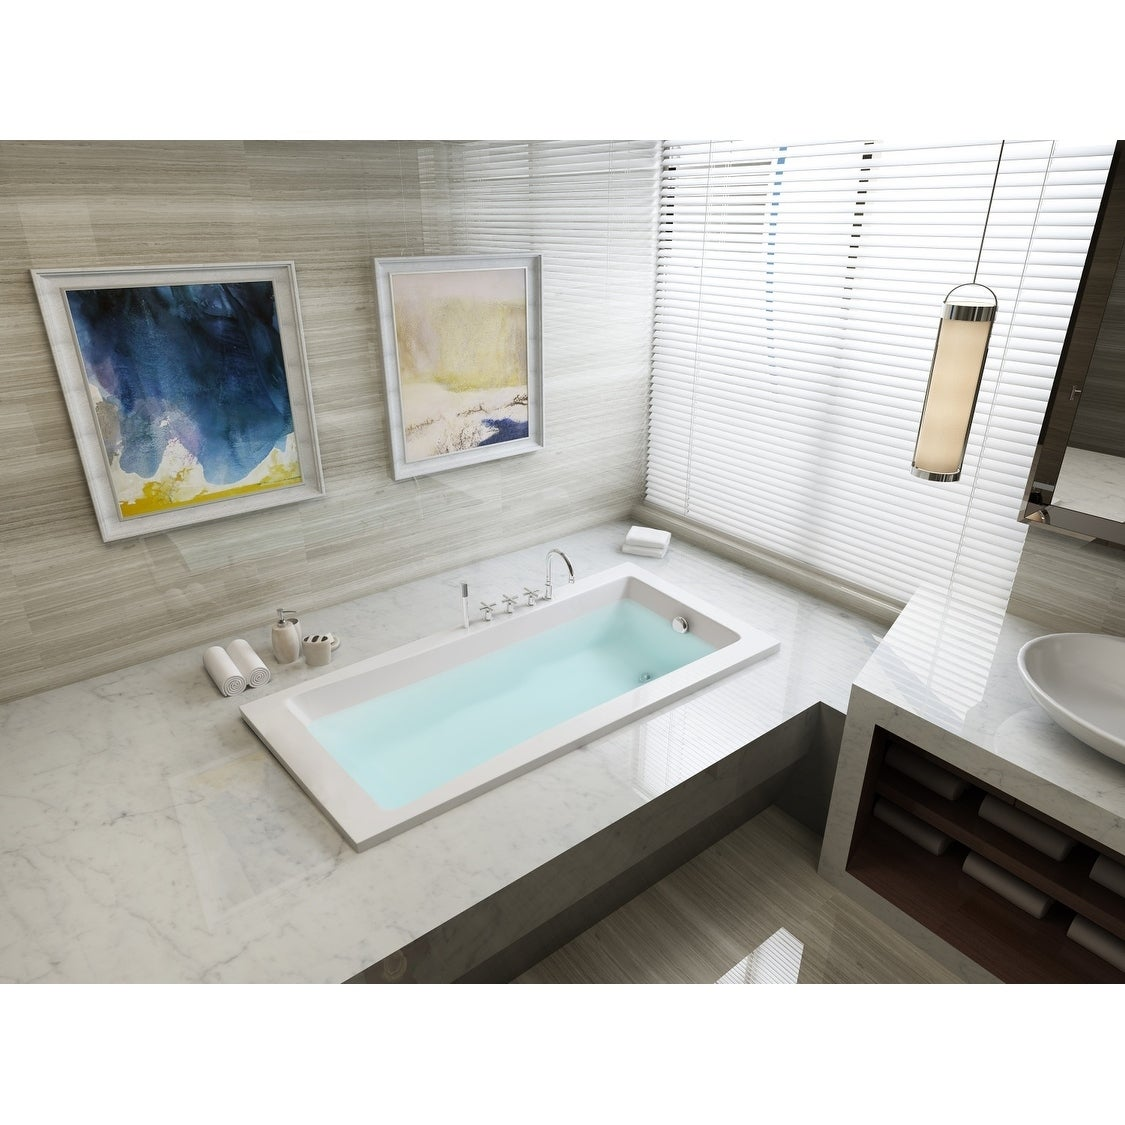 Shop Black Friday Deals On 59 Inches Drop In Acrylic Bathtub White Overstock 24216224